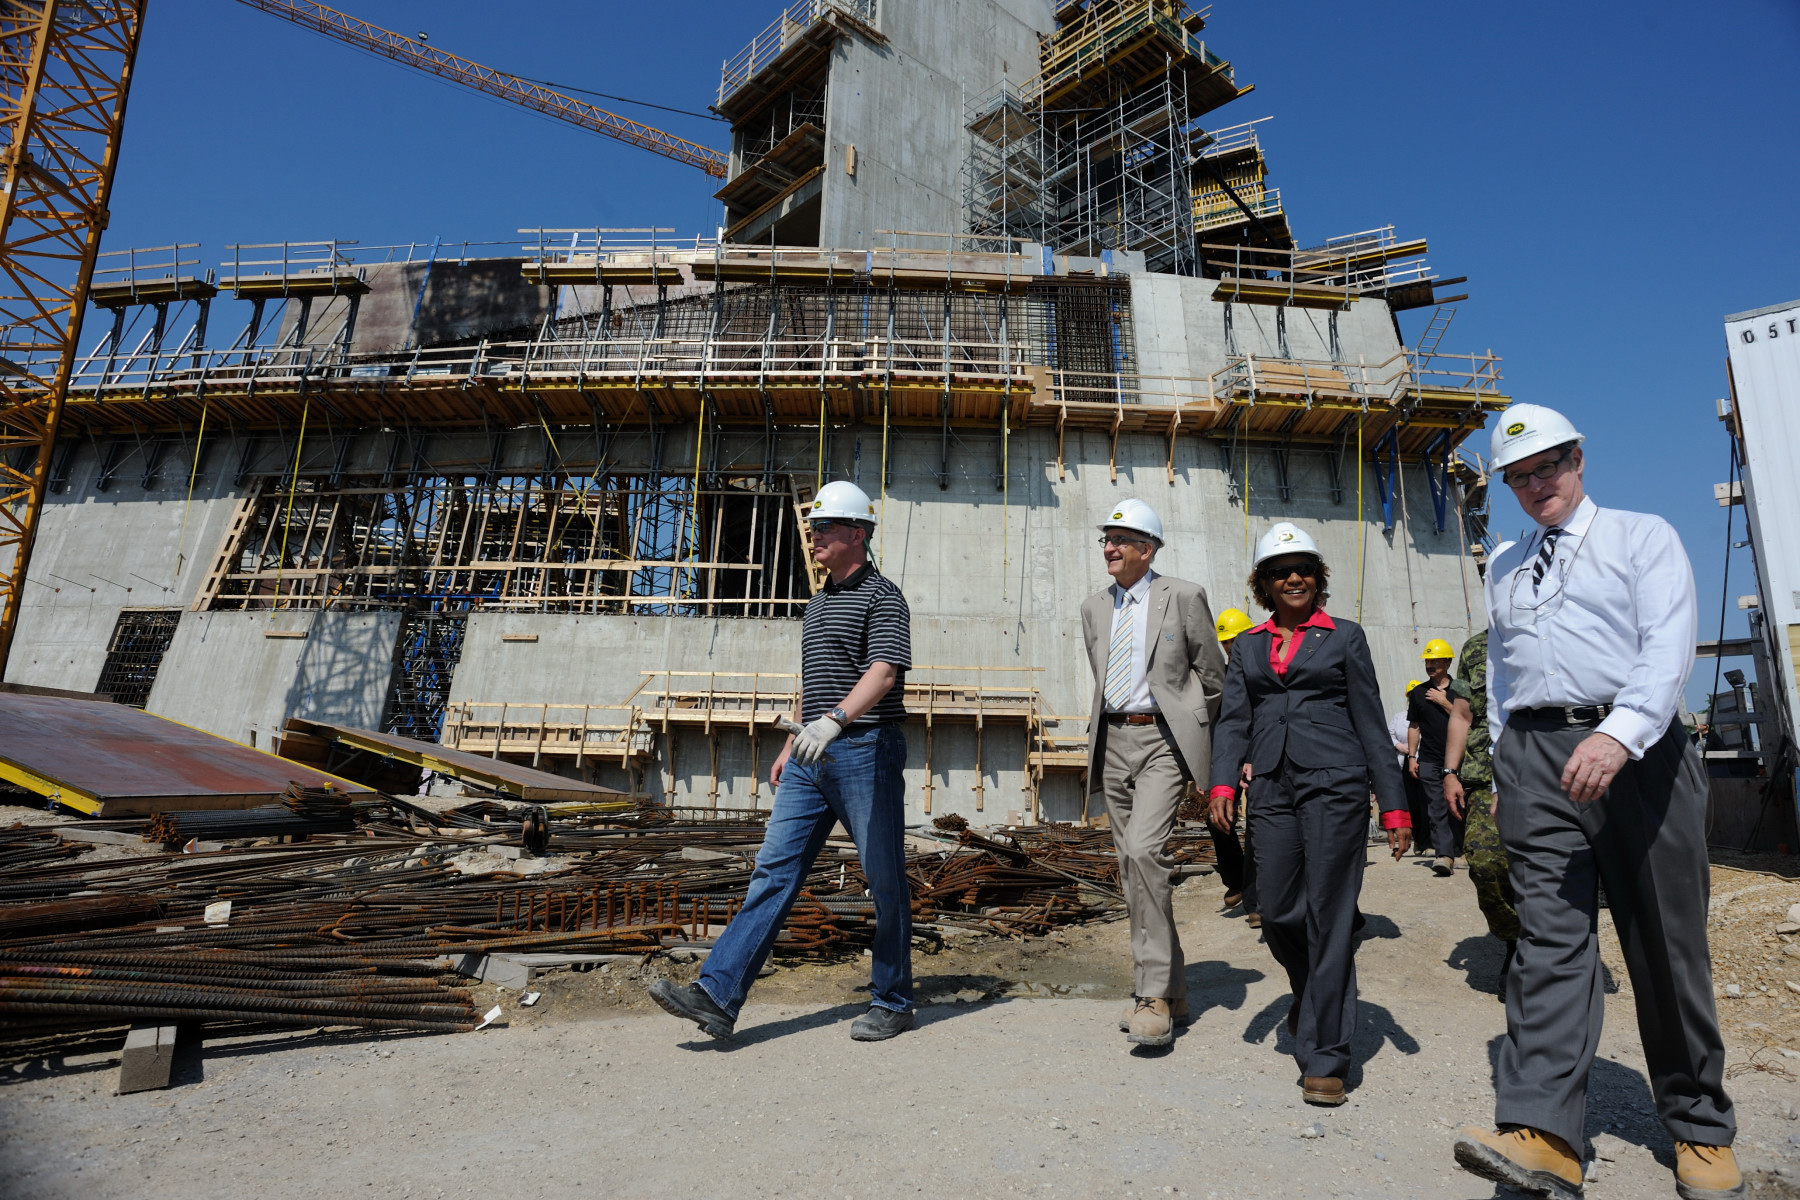 Their Excellencies visited the site of the future museum, of which the Governor General is Honorary President.